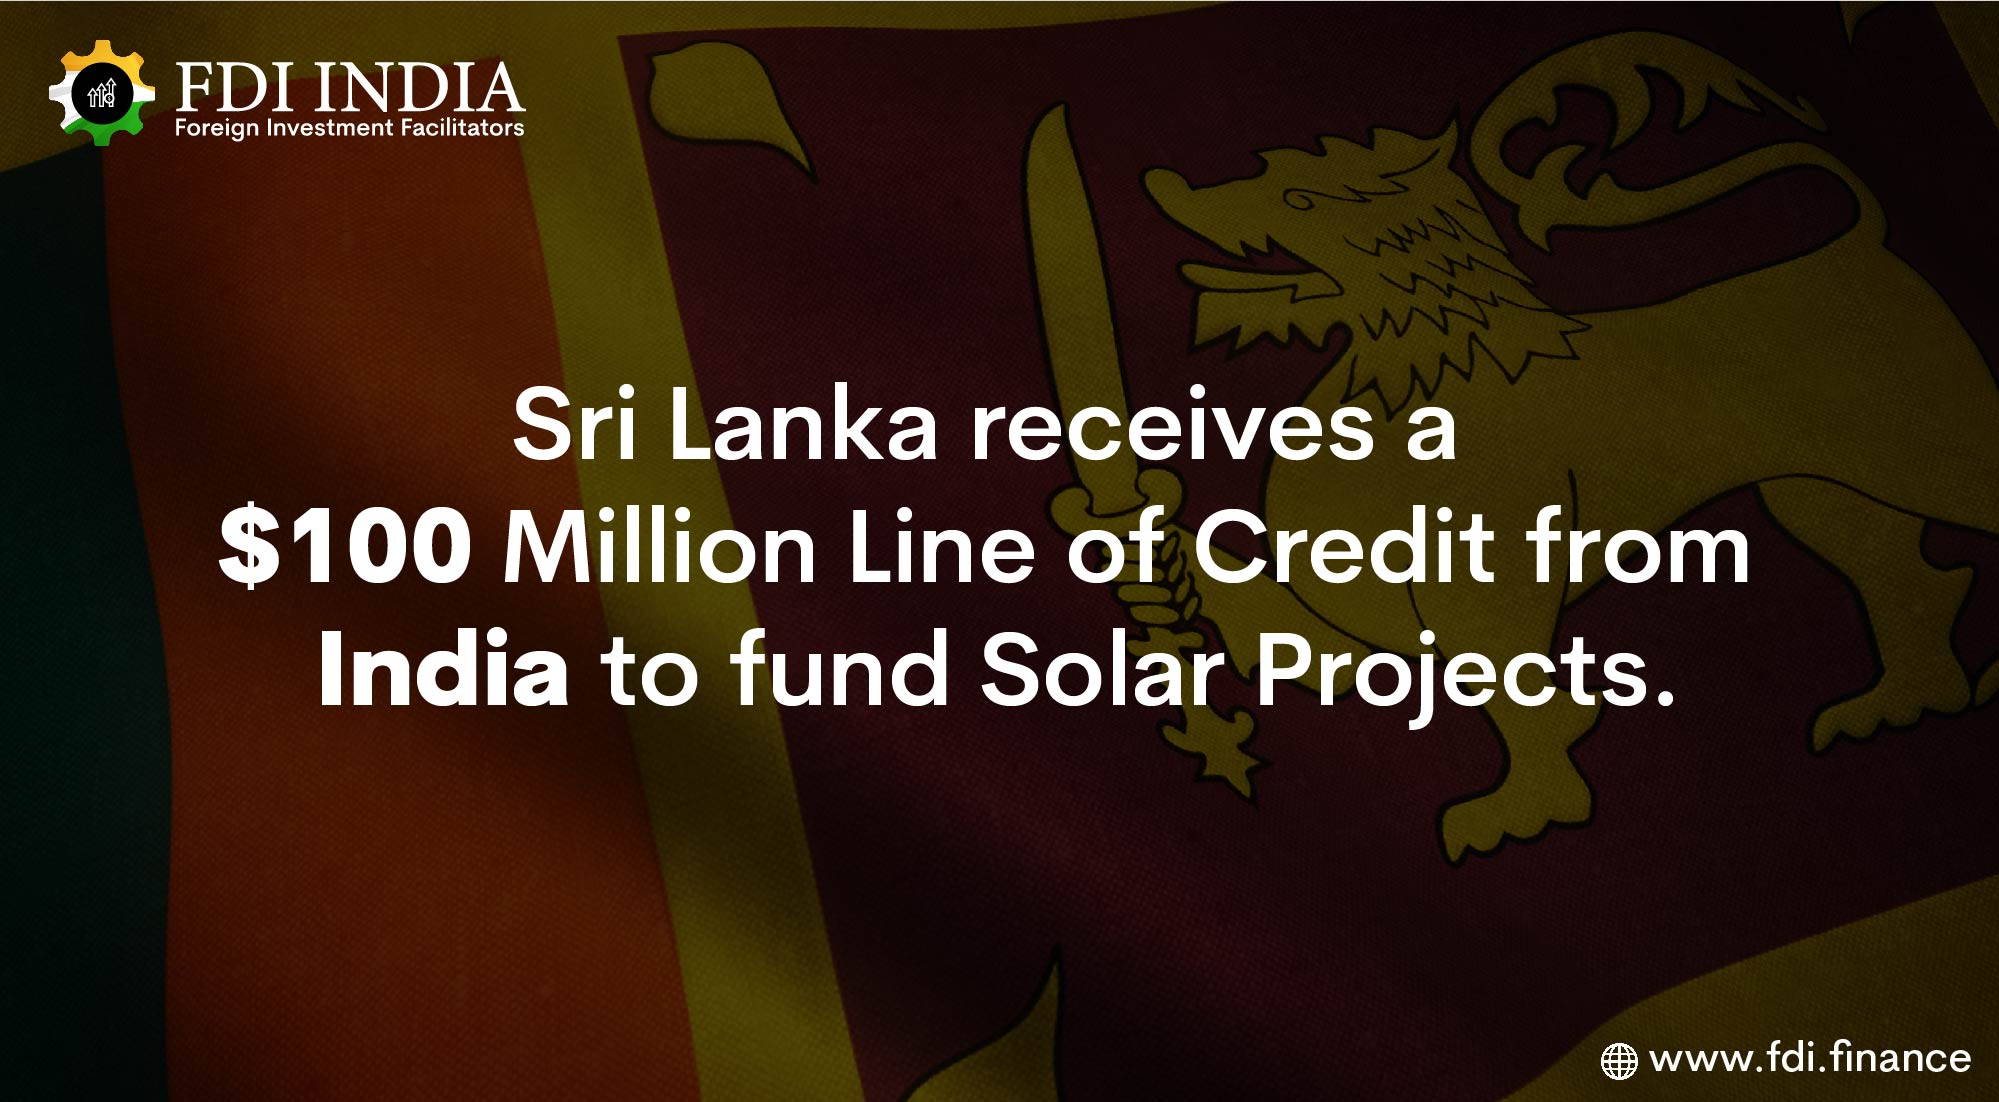 Sri Lanka Receives a $100 Million Line of Credit From India to Fund Solar Projects